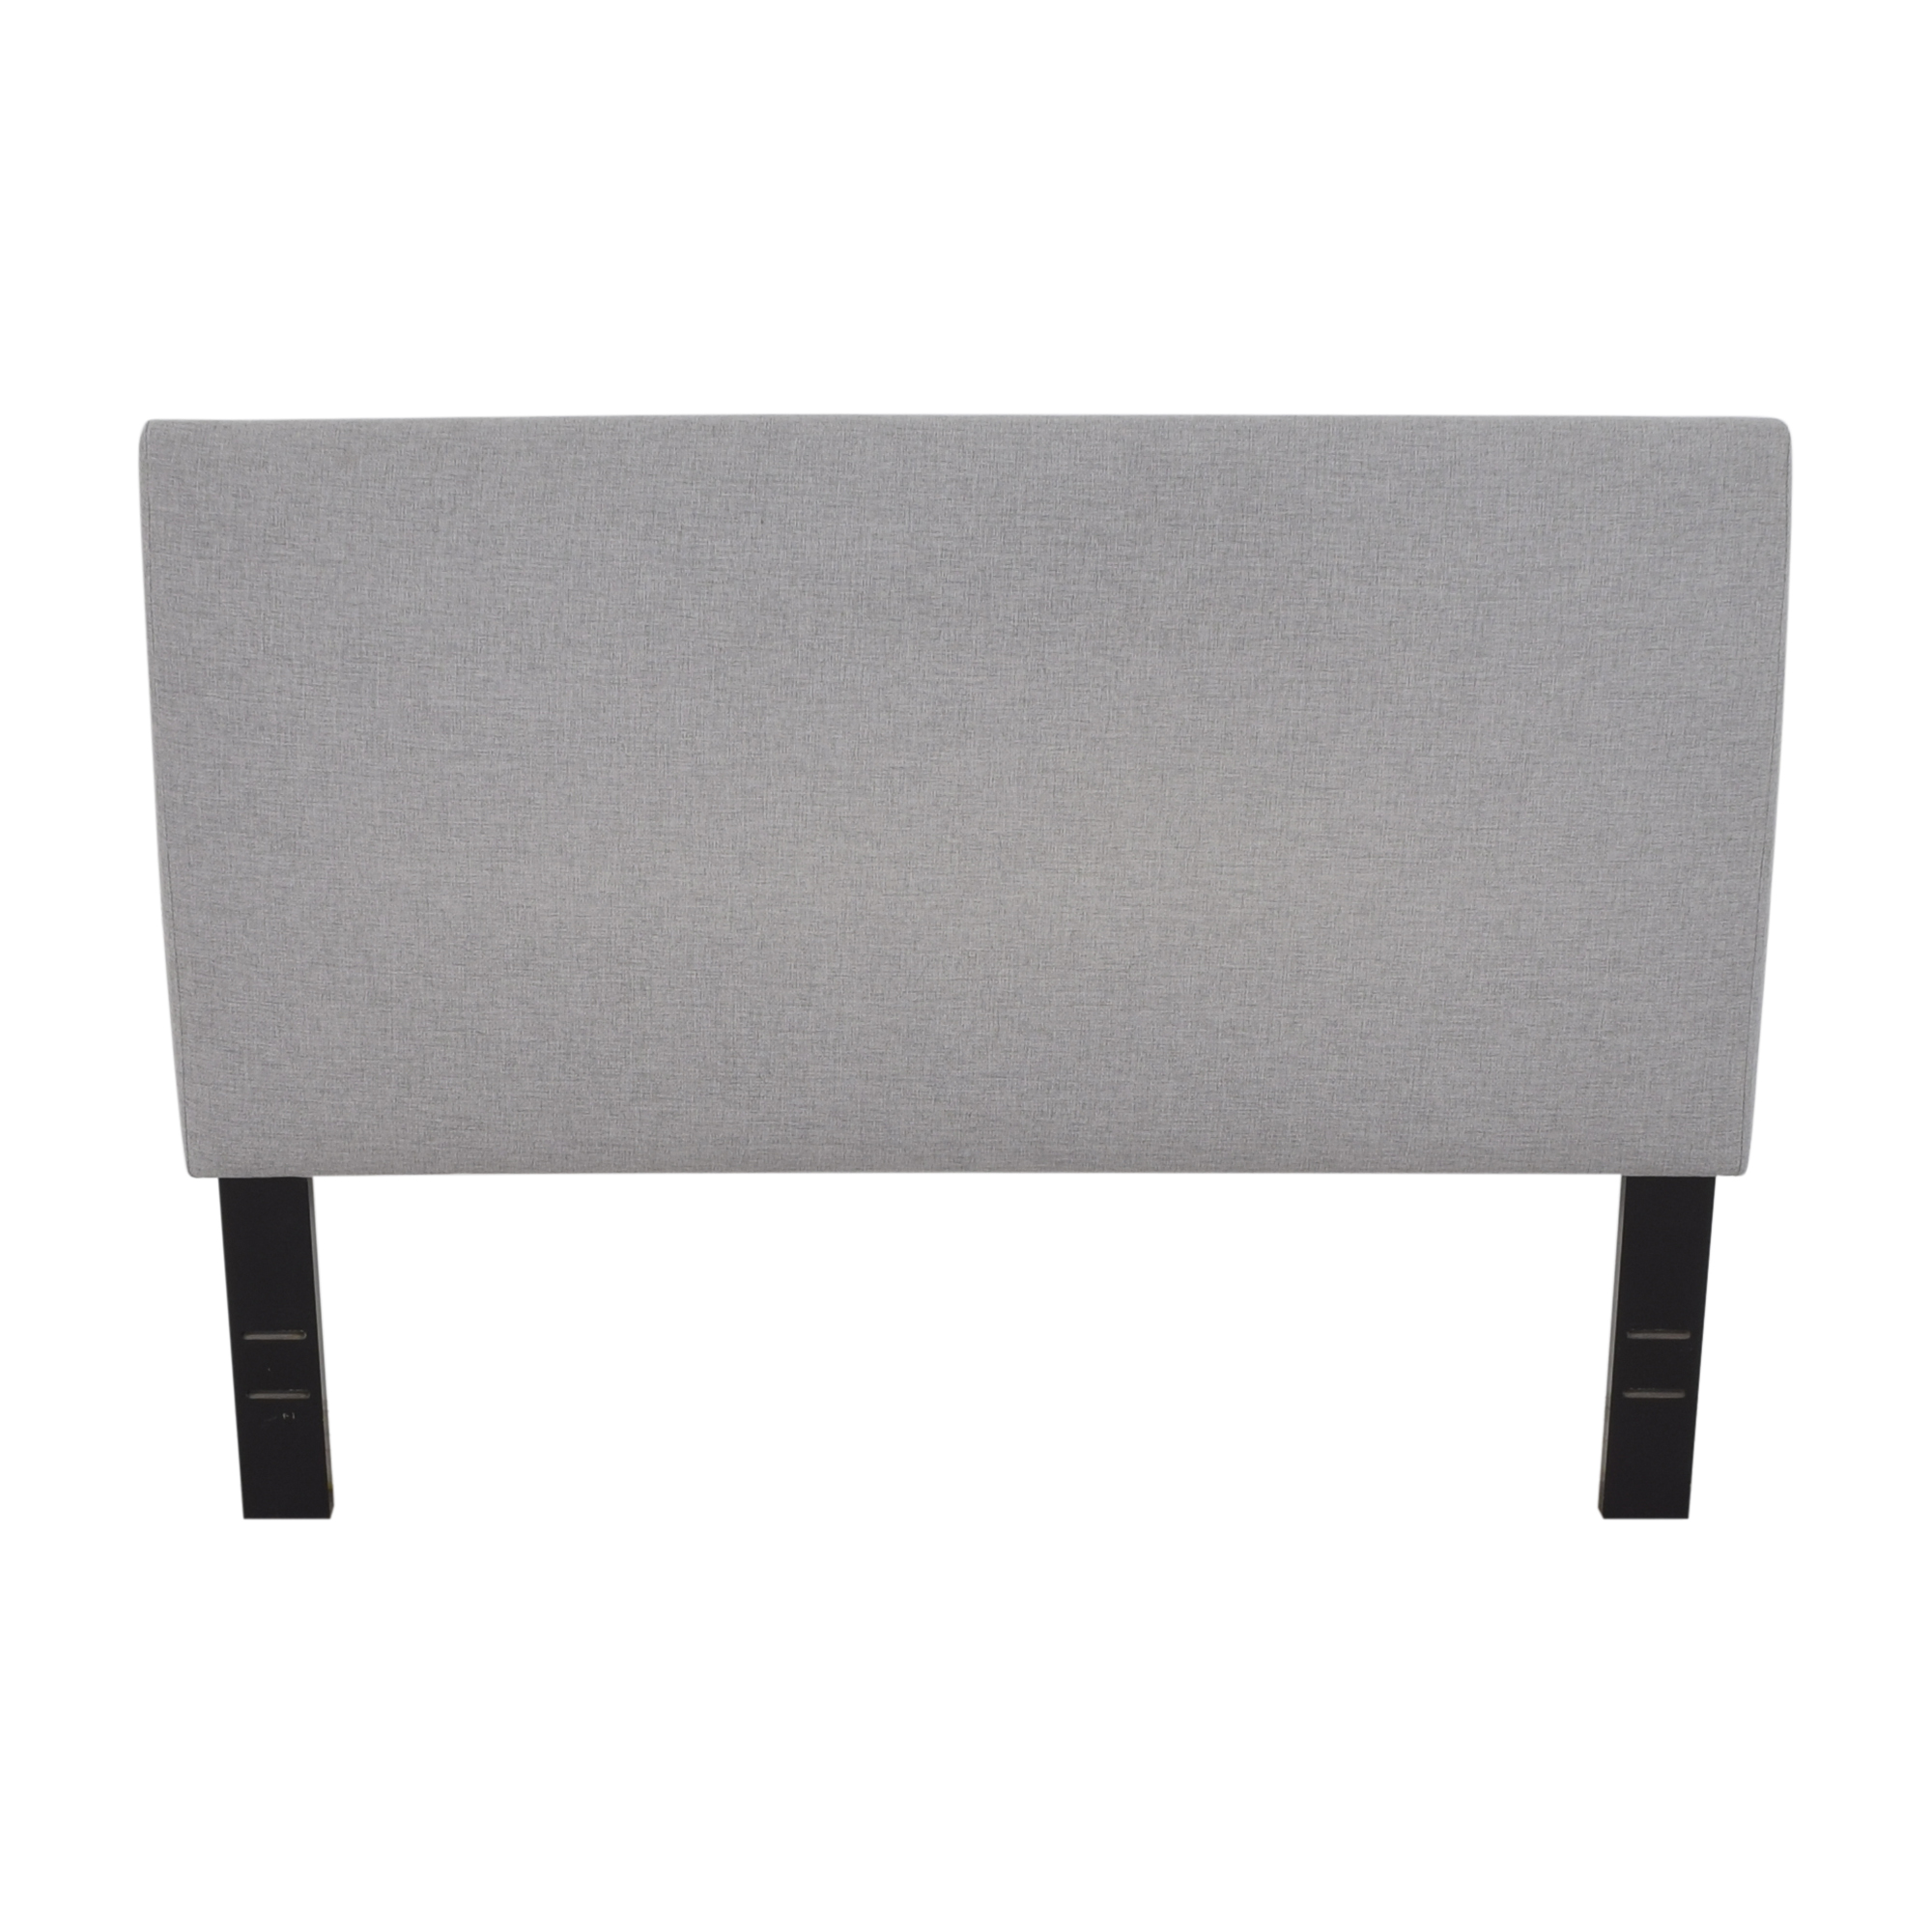 shop West Elm West Elm Andes Full Headboard online